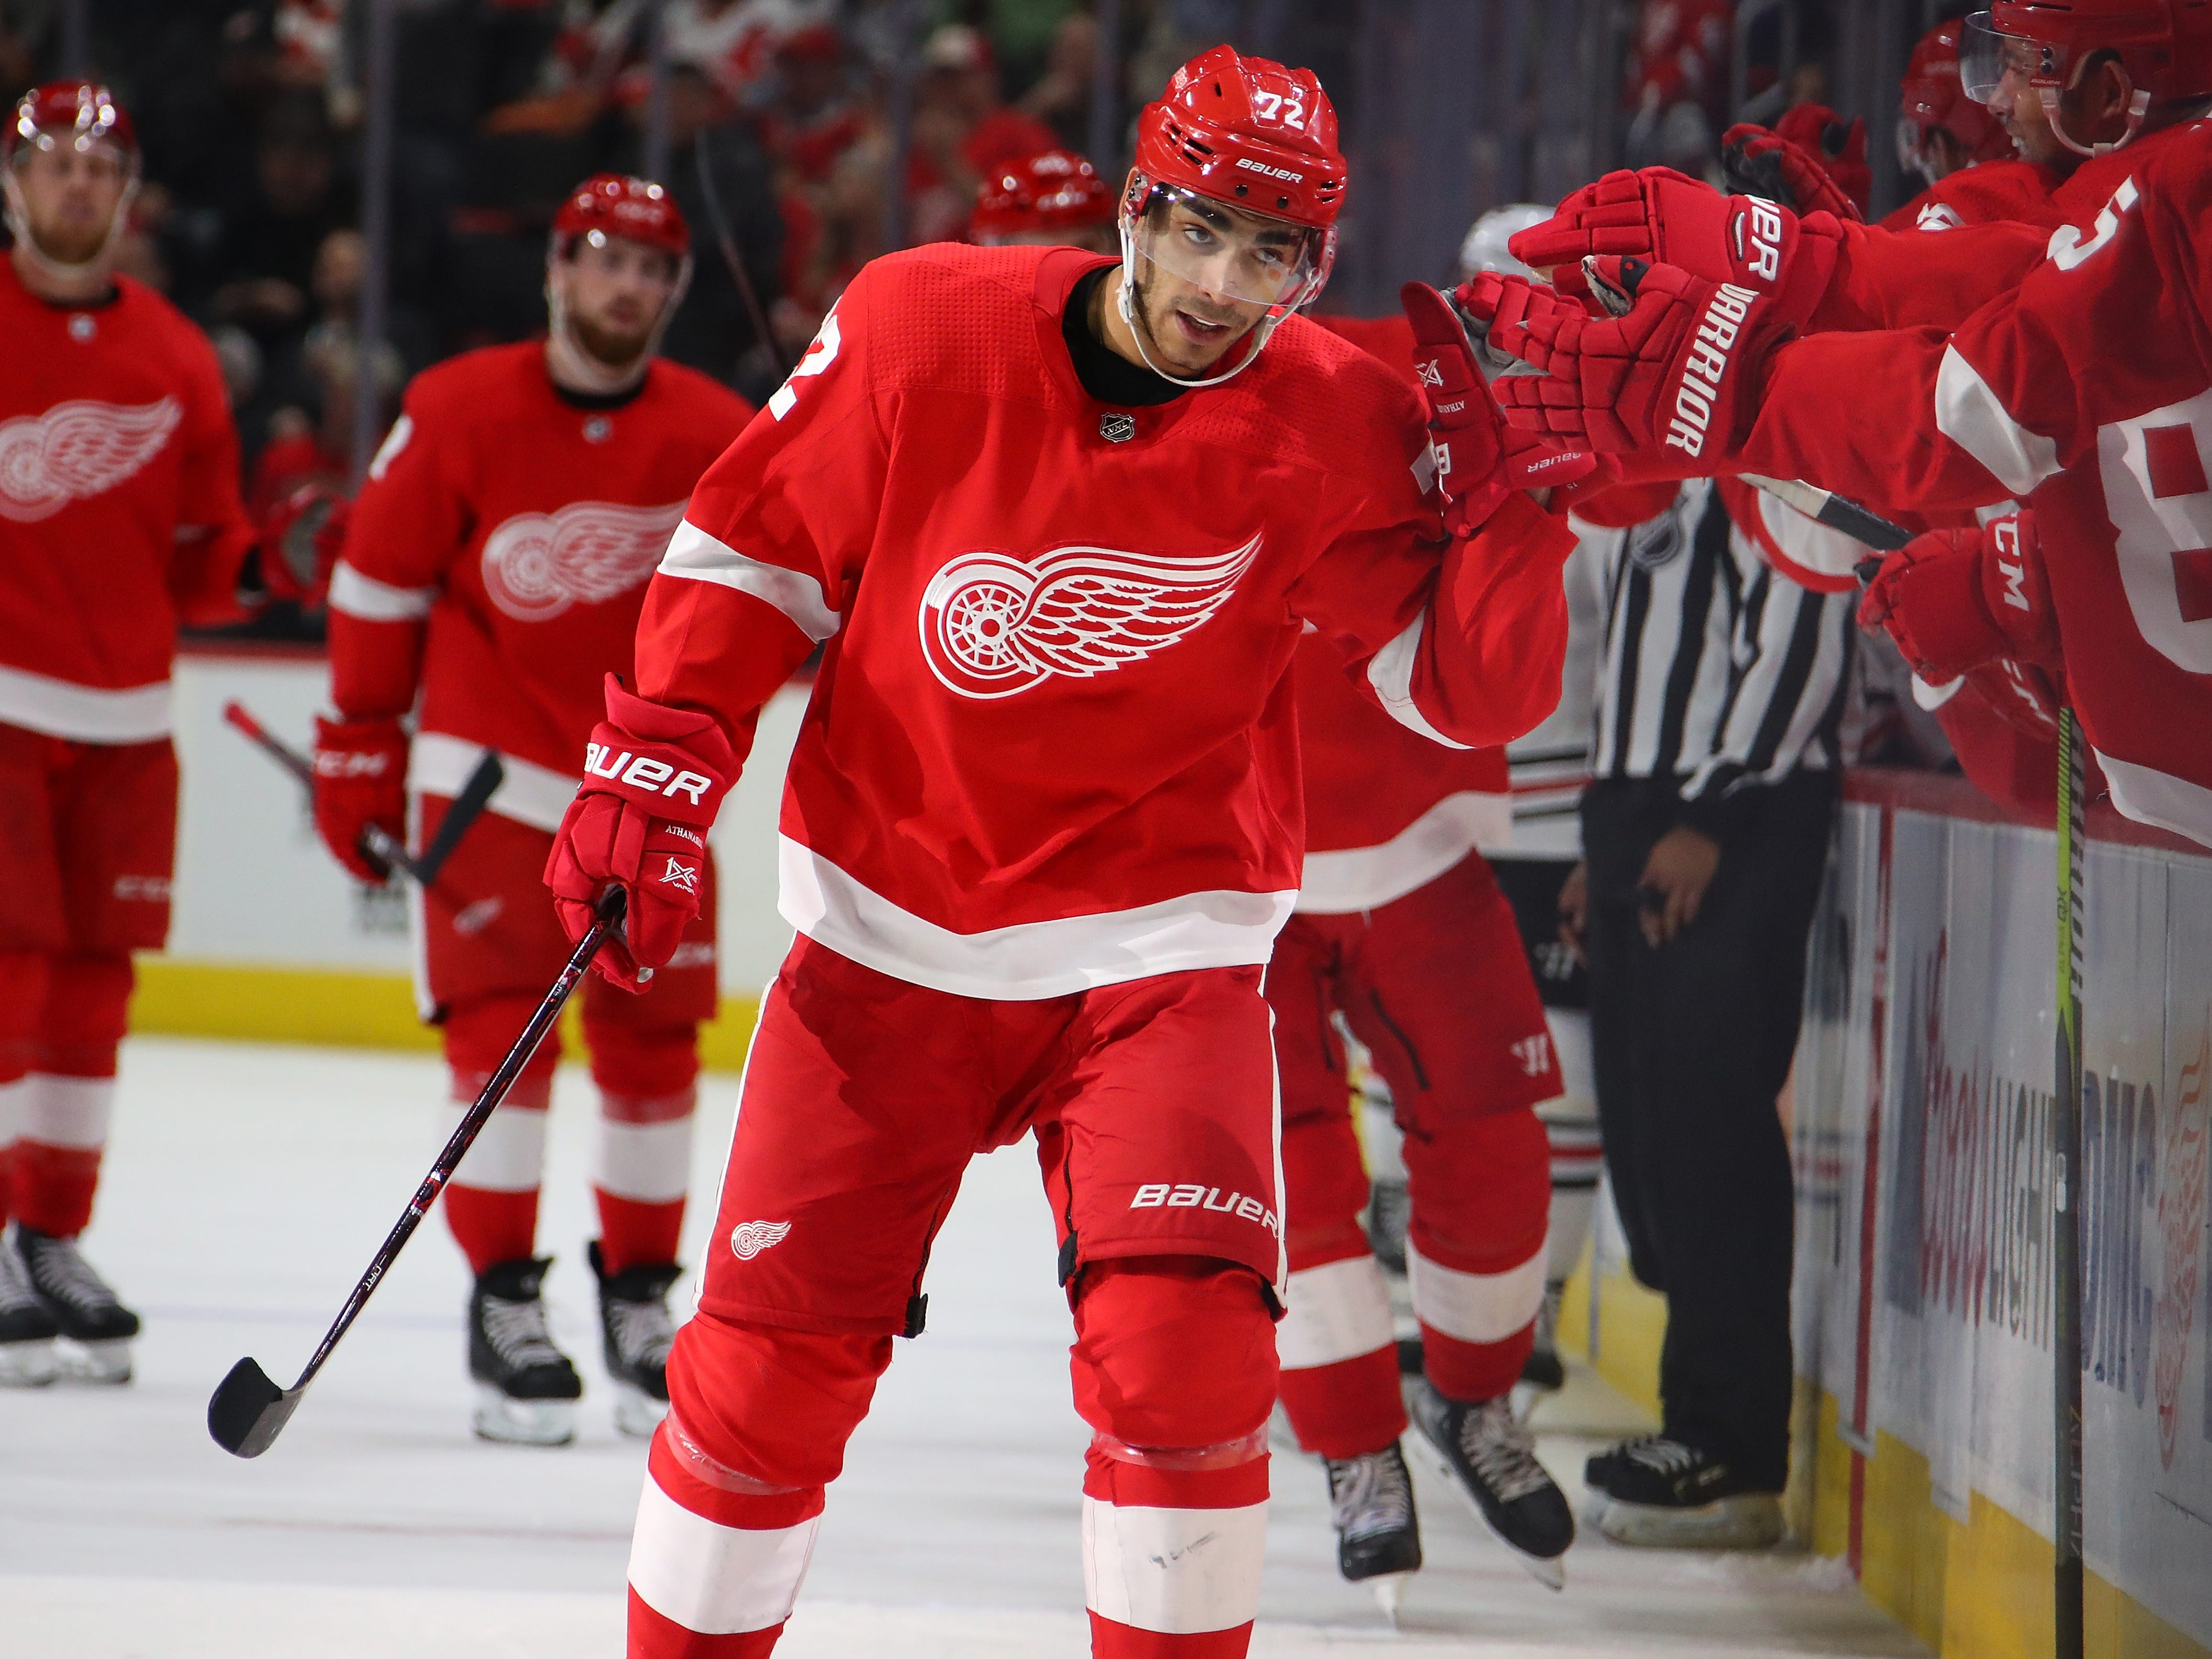 Red Wings forward Andreas Athanasiou celebrates his goal with teammates in the third period of the Wings' 5-4 loss on Wednesday, Feb. 20, 2019, at Little Caesars Arena.